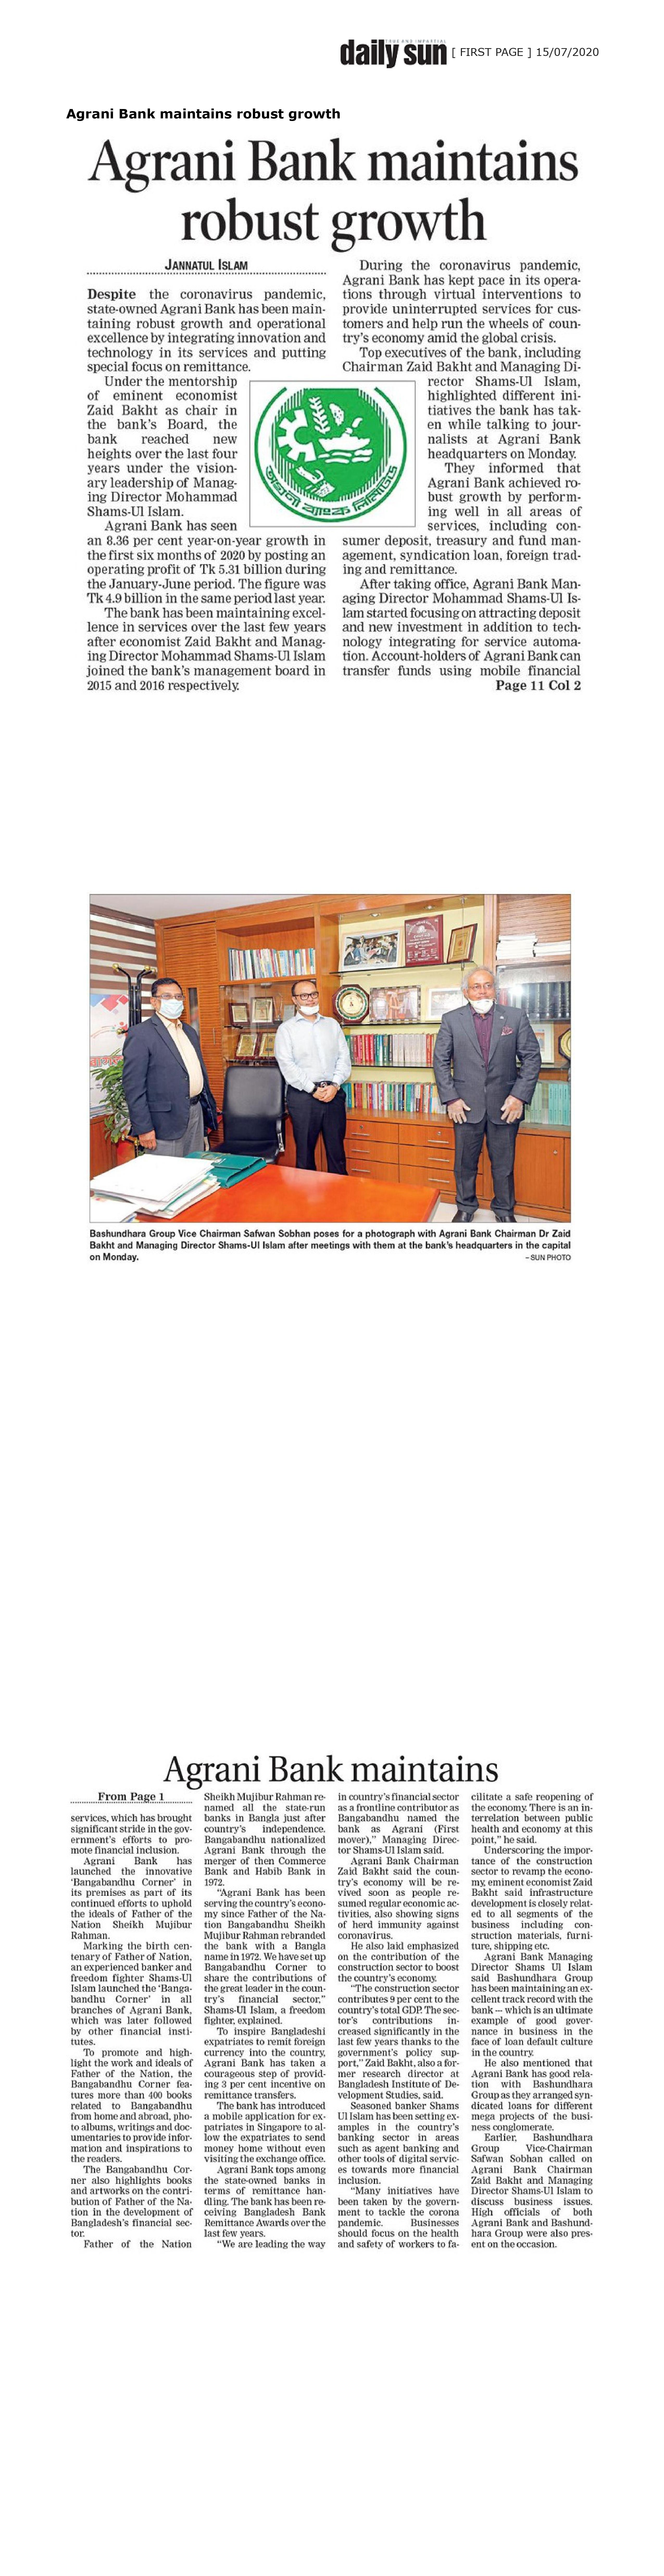 Agrani Bank maintains robust growth (Daily Sun)